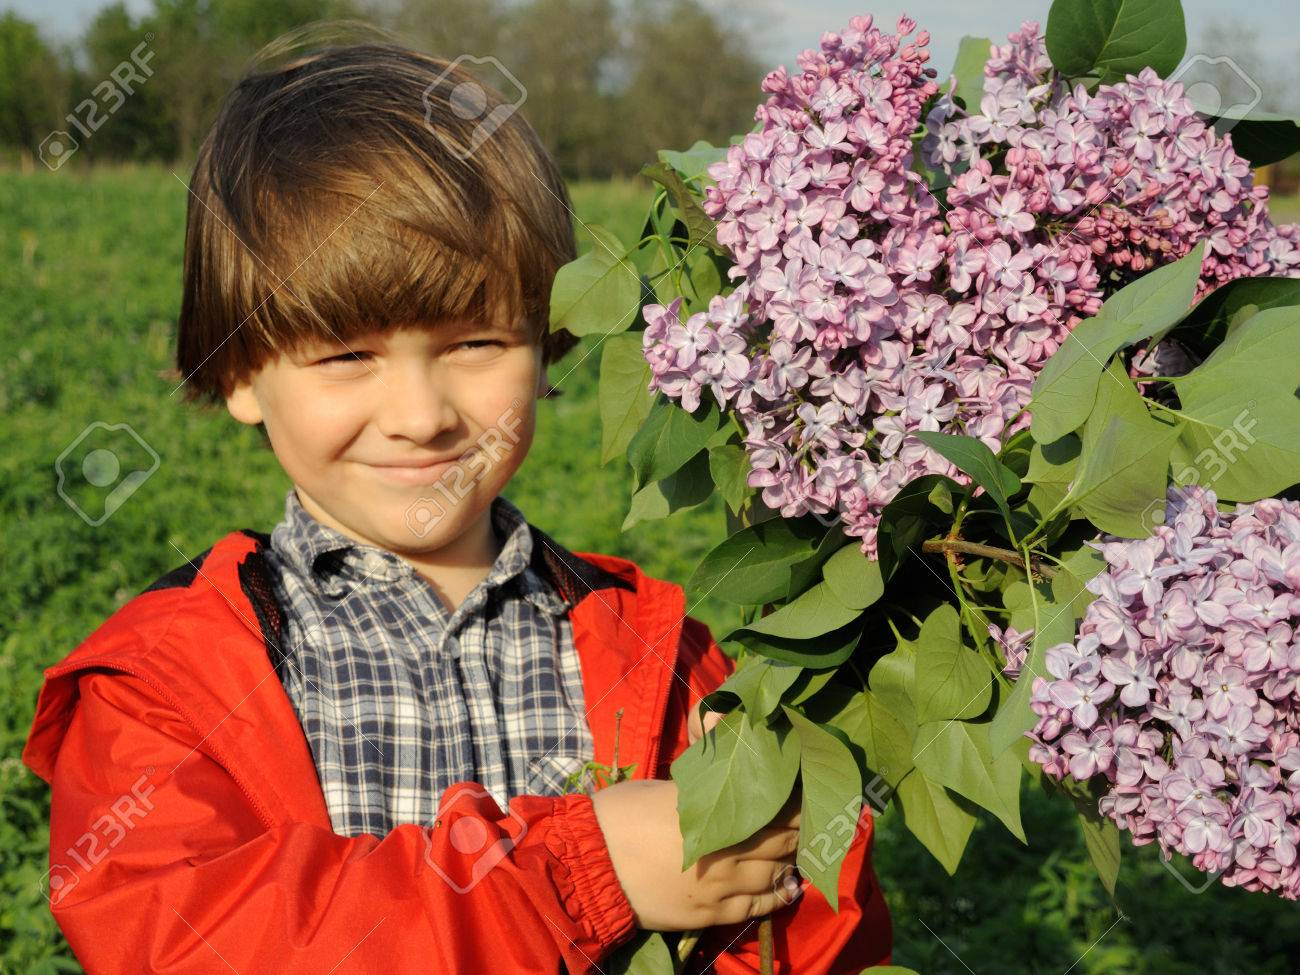 Portrait of a smiling young boy standing in the forest field meadow with lilac purple flowers in his hands. Happiness, fashionable concept. Lifestyle. Happy child with bouquet of flowers. Mothers day concept. - 43075983